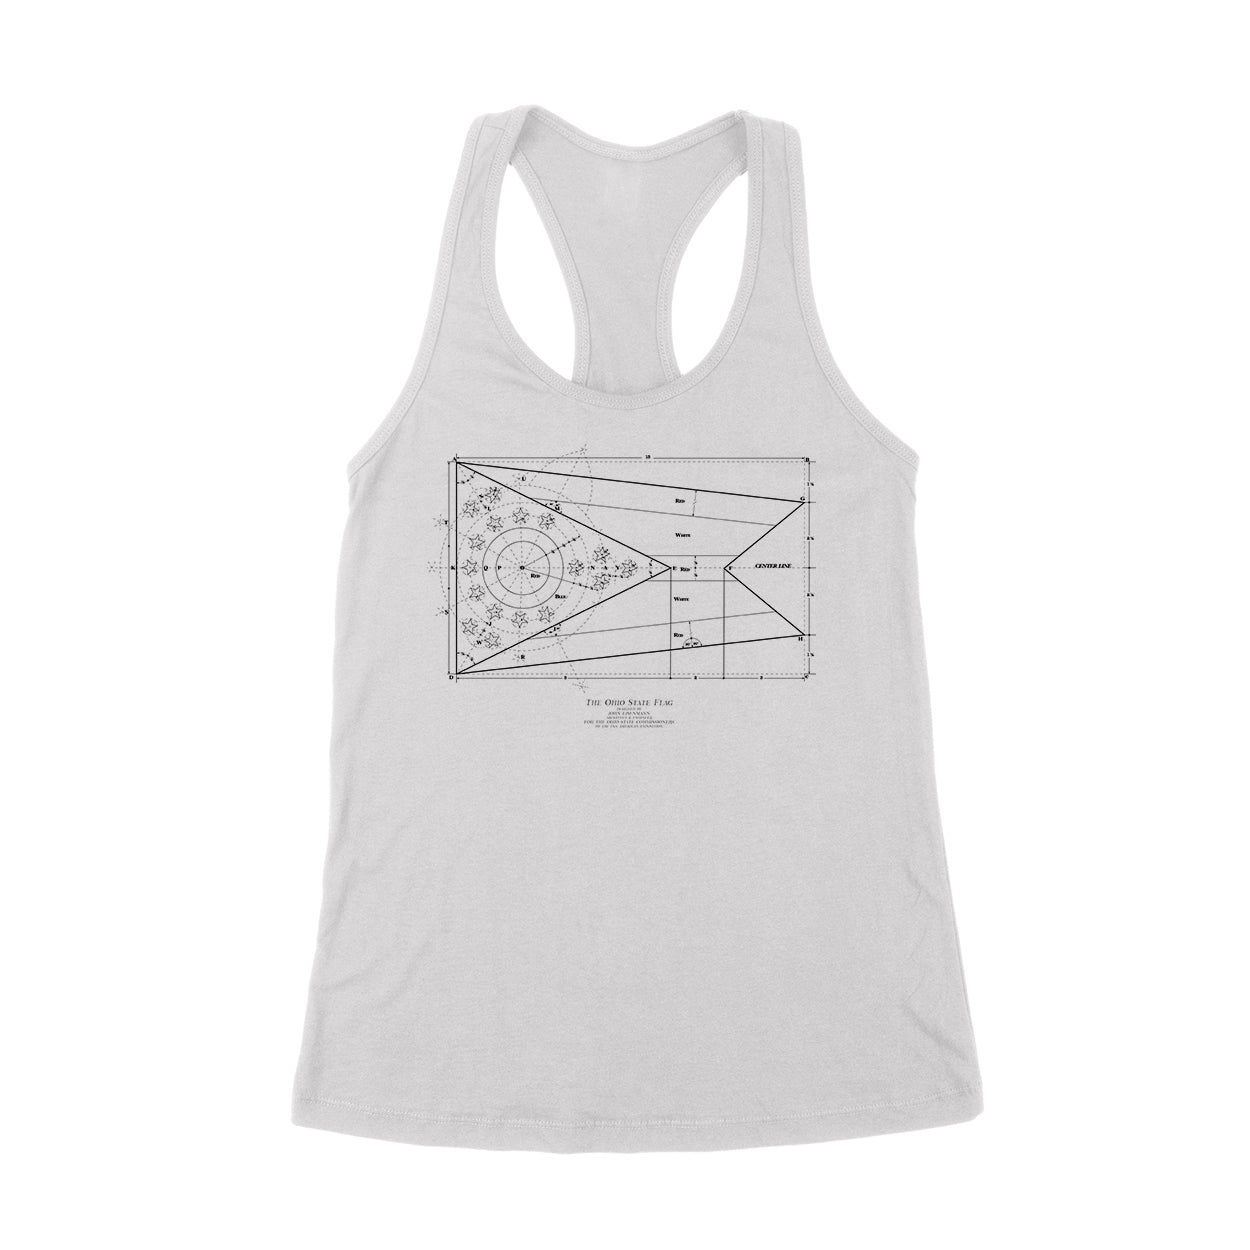 The Blueprint - Ohio State Flag Women's Tank